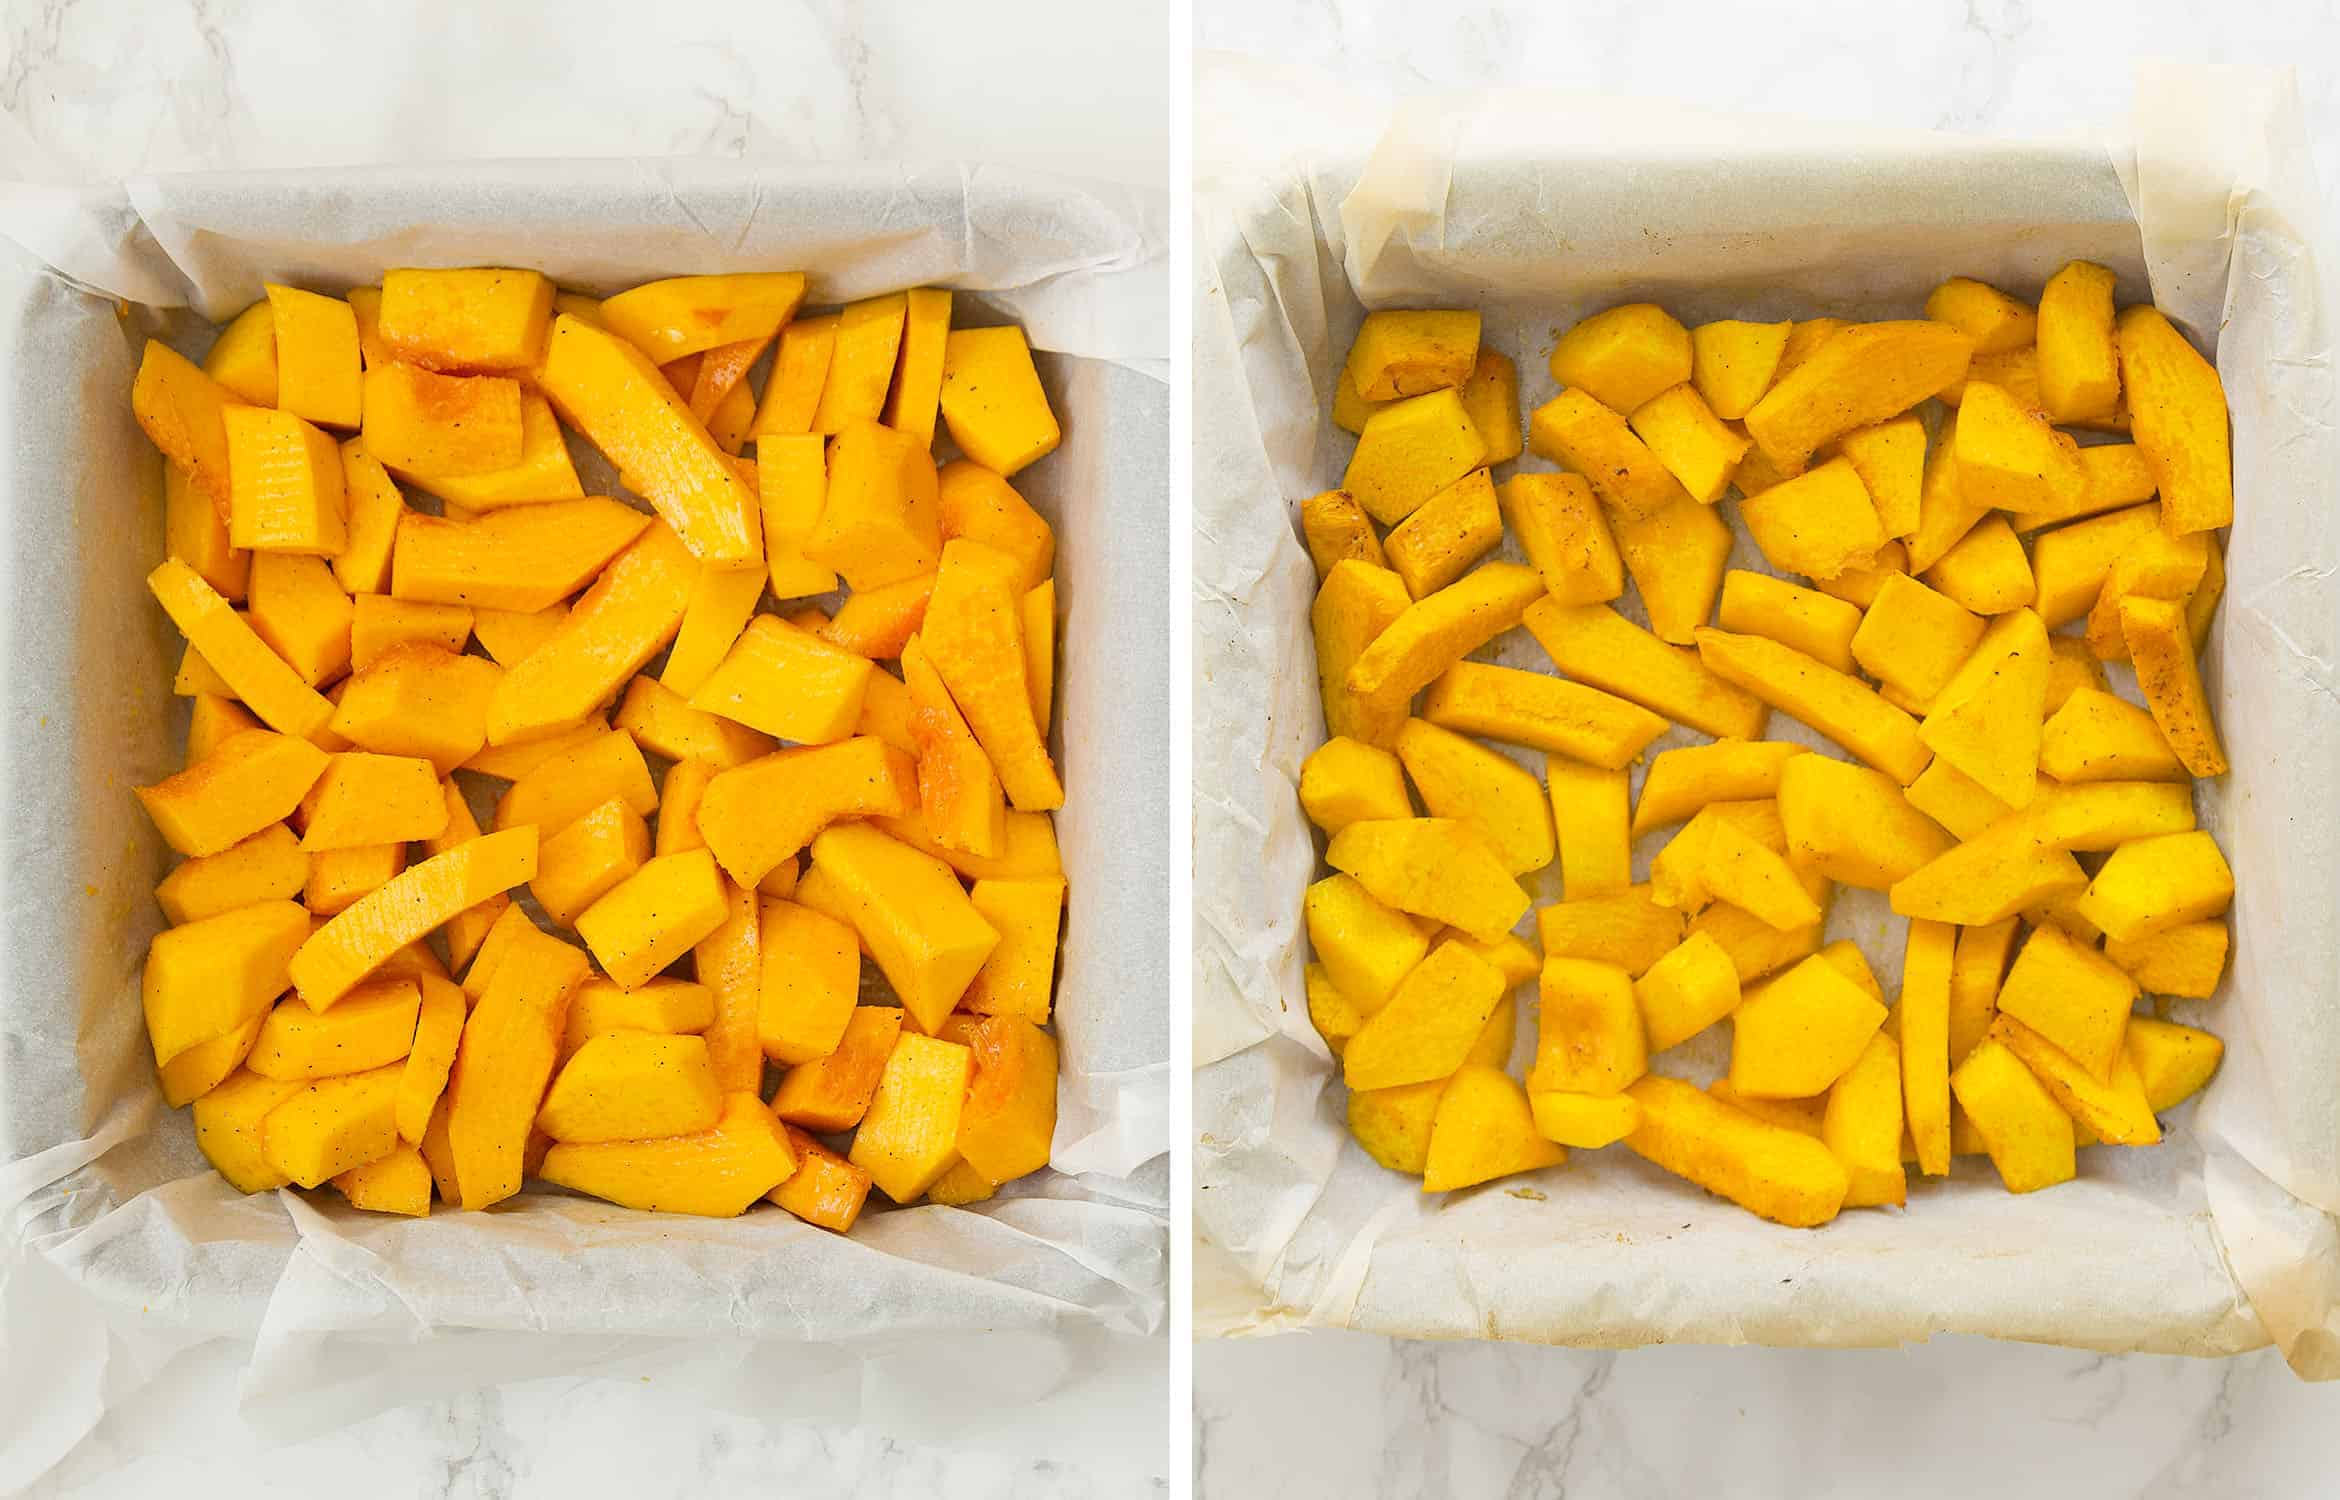 A squared baking pan full of slices of pumpkin.